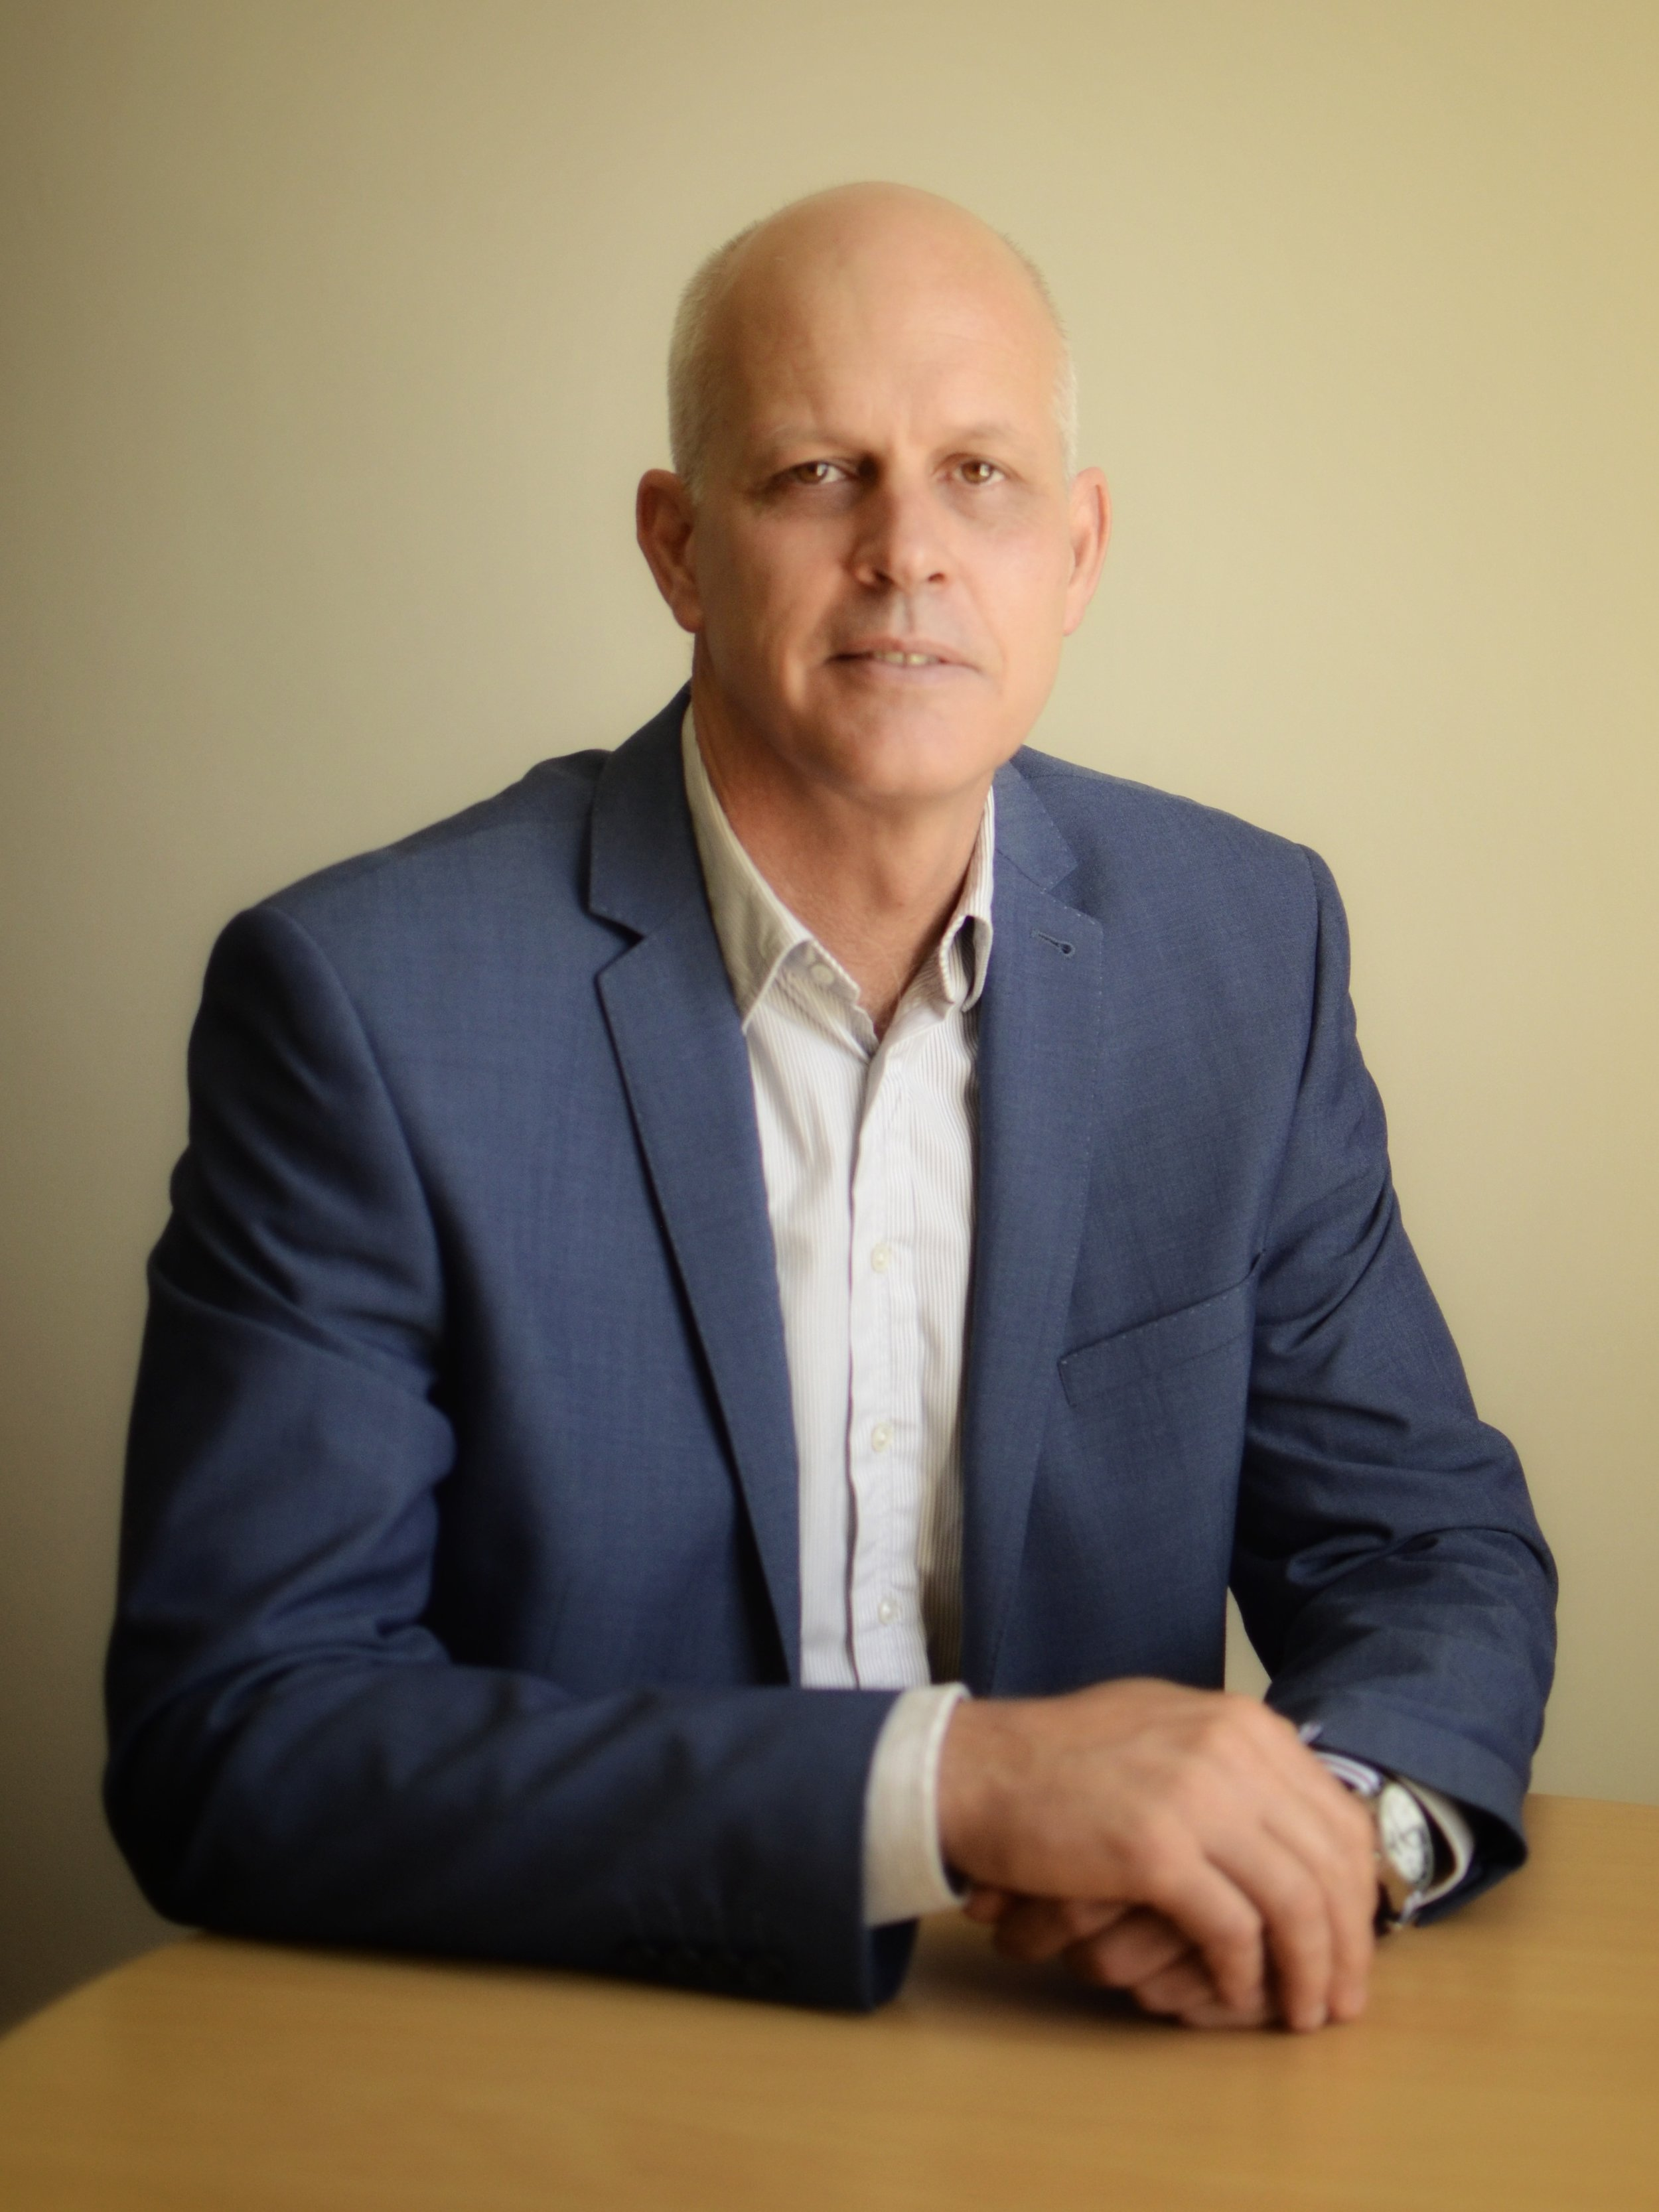 SRK Consulting's Chris Dalgliesh, partner and principal environmental scientist based in the Cape Town office